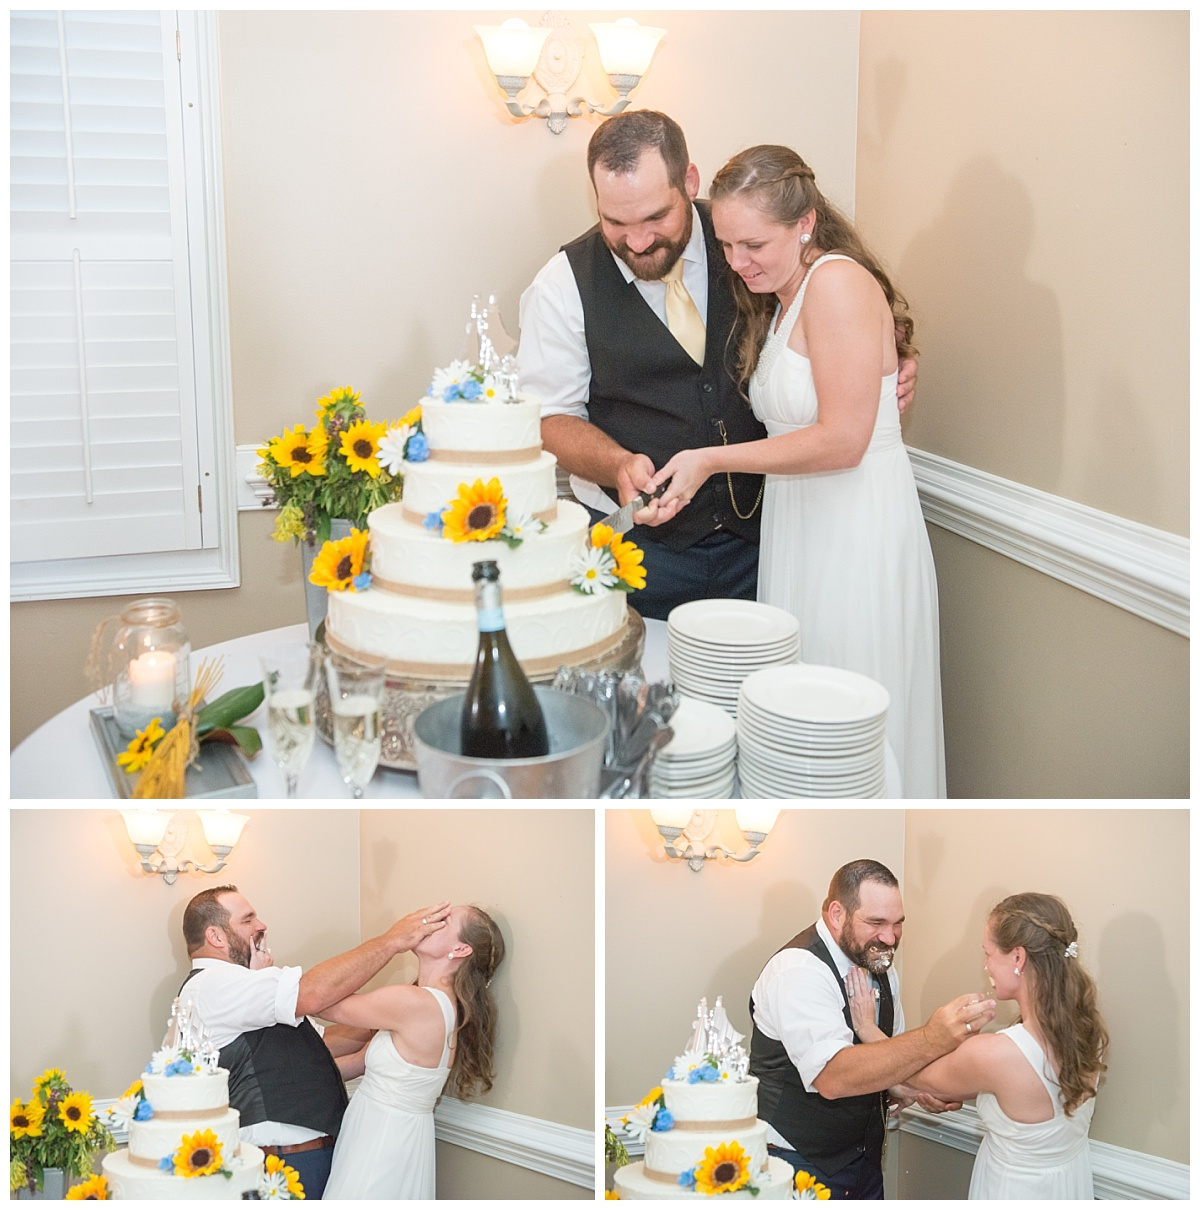 Cake cutting at the corley mill house